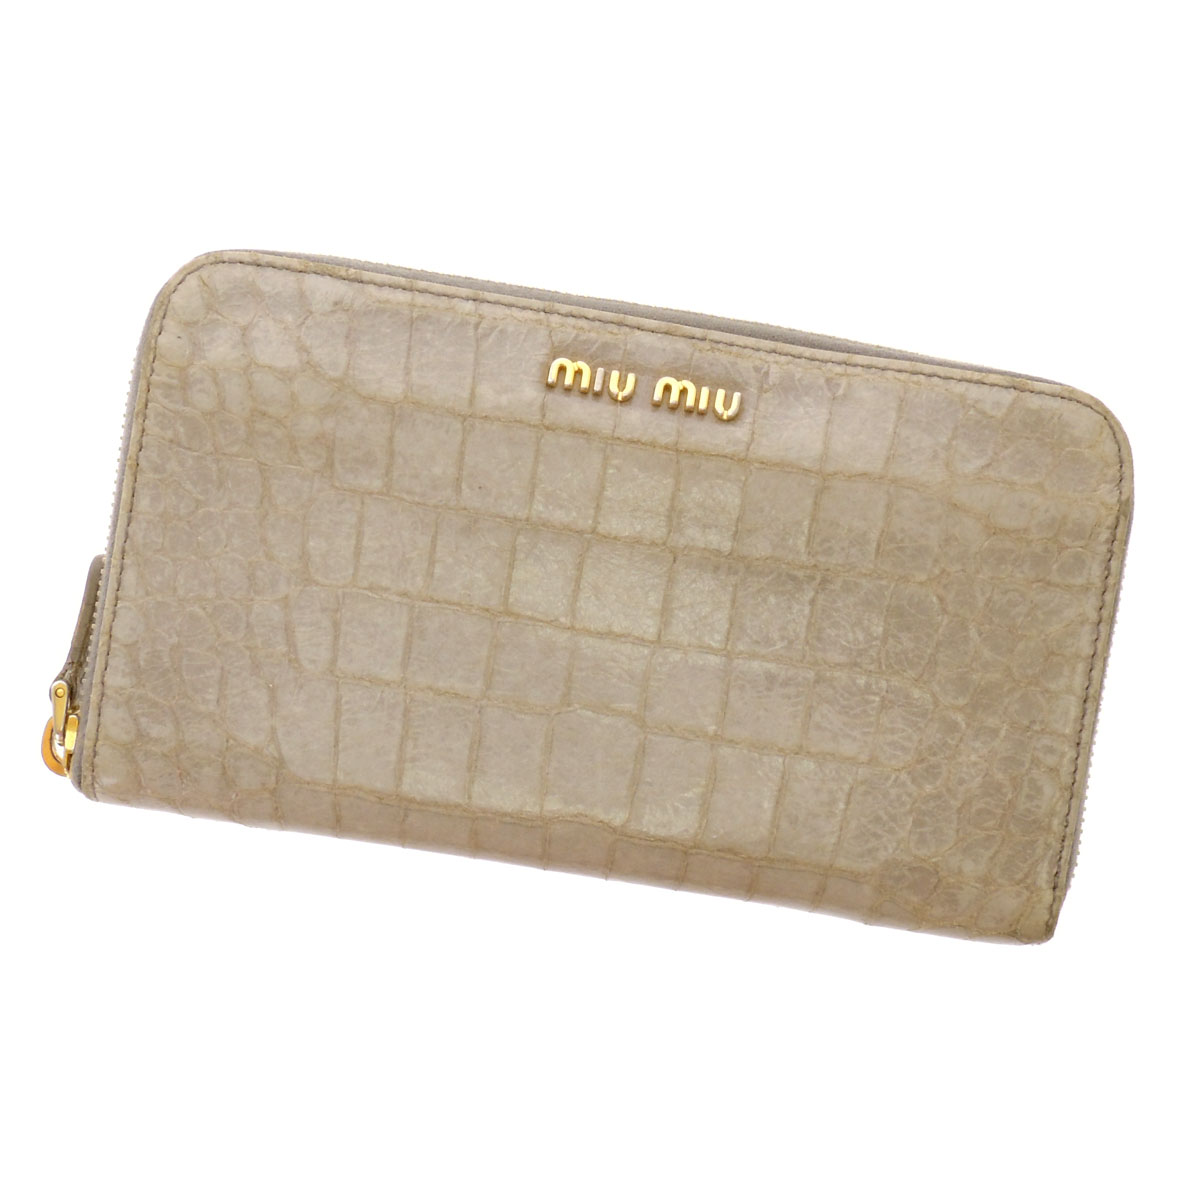 MIUMIU logo with wallets ( purses and ) Leather Womens